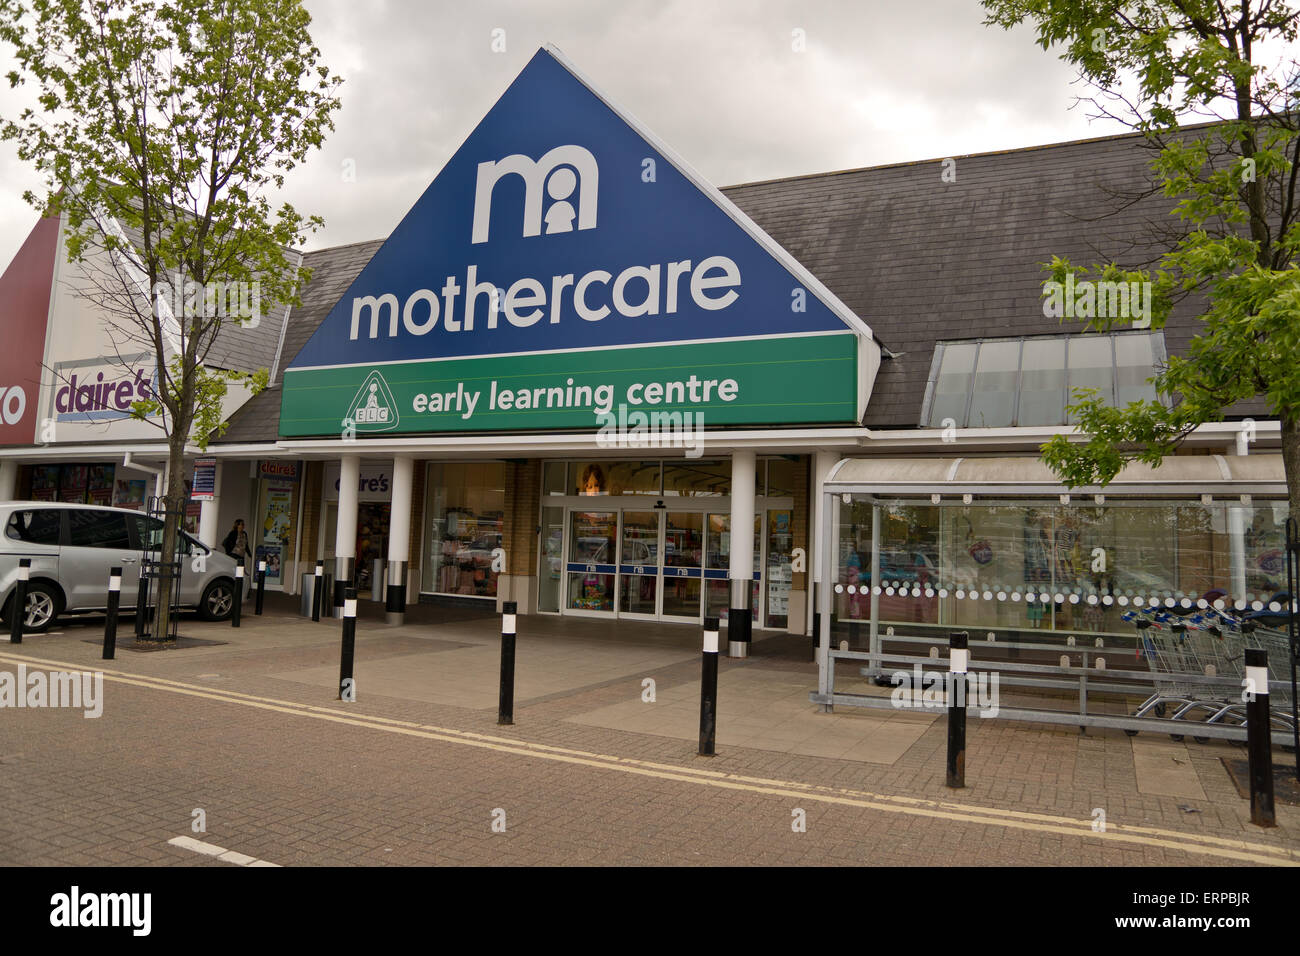 A Mothercare shop front - Stock Image